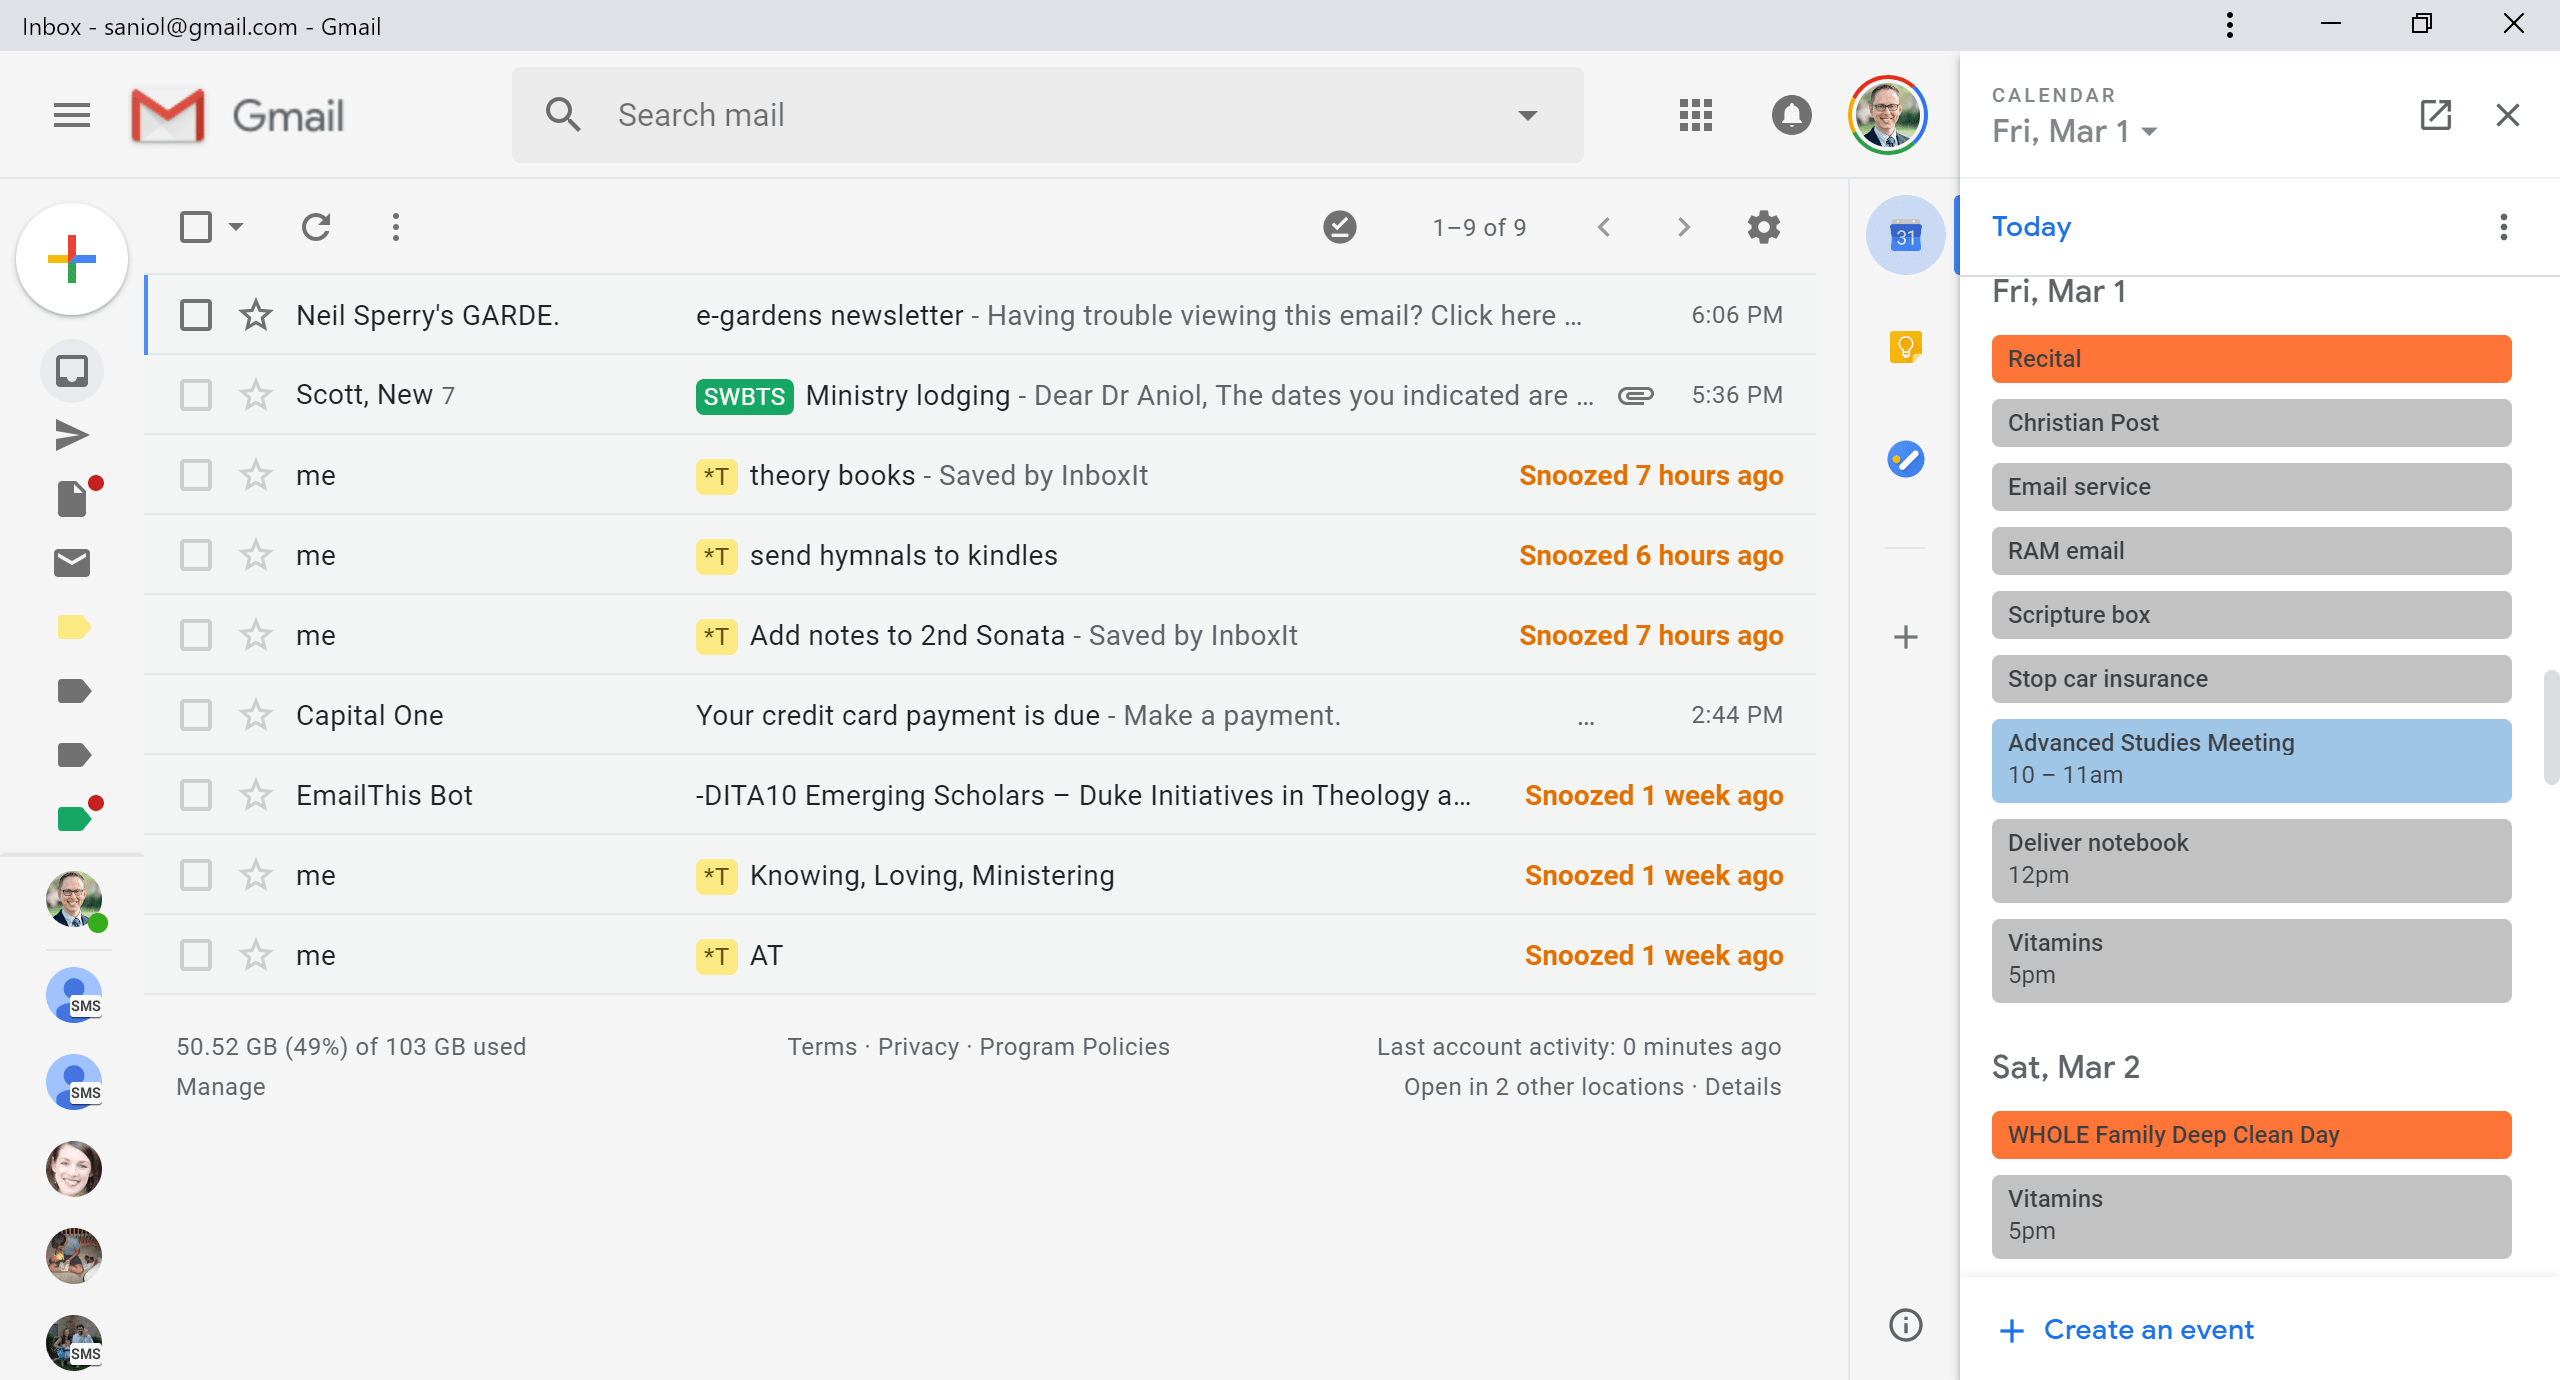 Getting Things Done: Google Calendar, Gmail + Evernote = Productivity